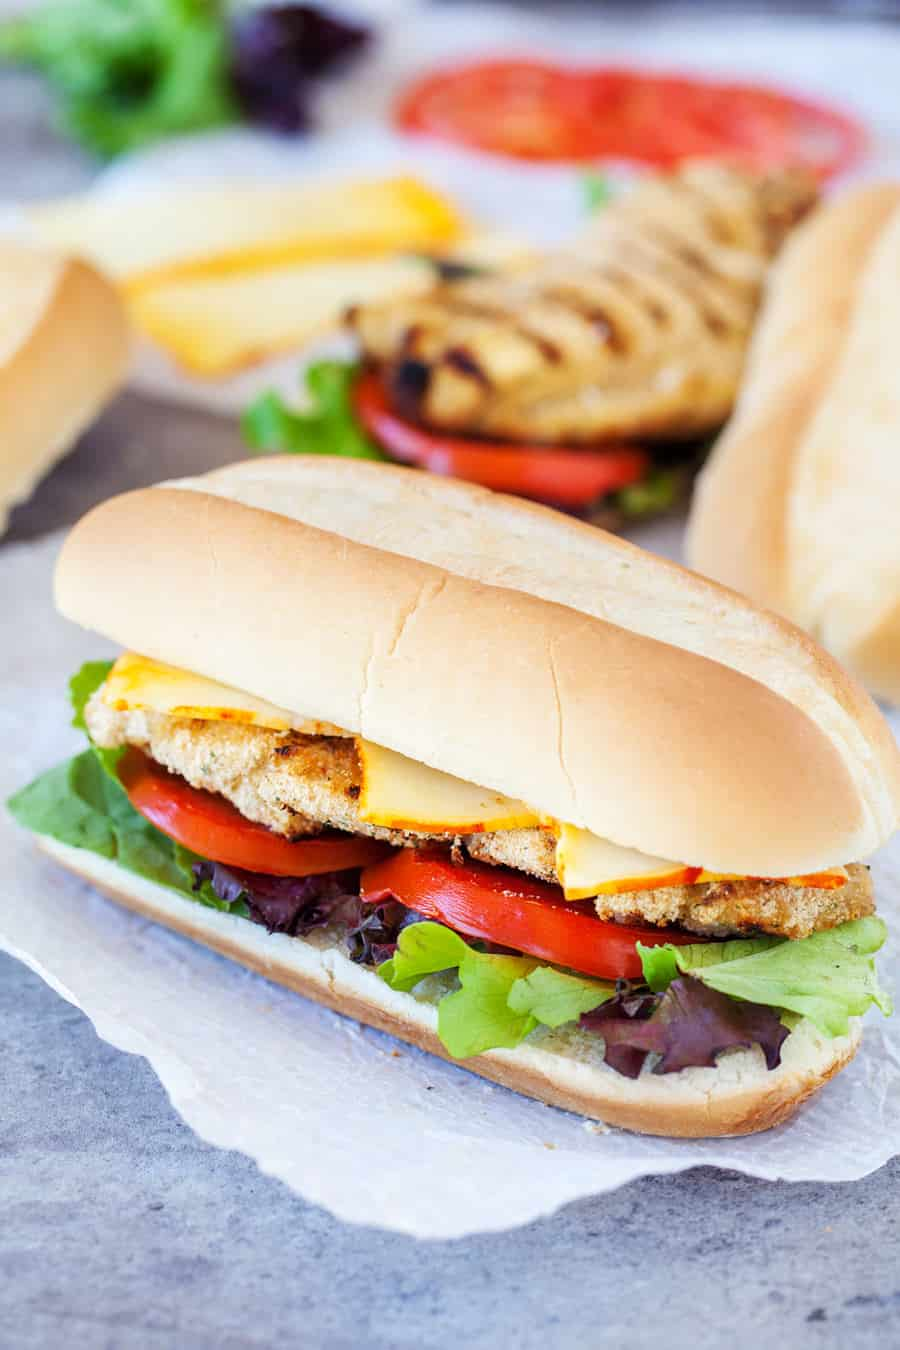 Want a delicious chicken sandwich recipe that takes better than fast food and is better for you too? Your whole family is going to love this!